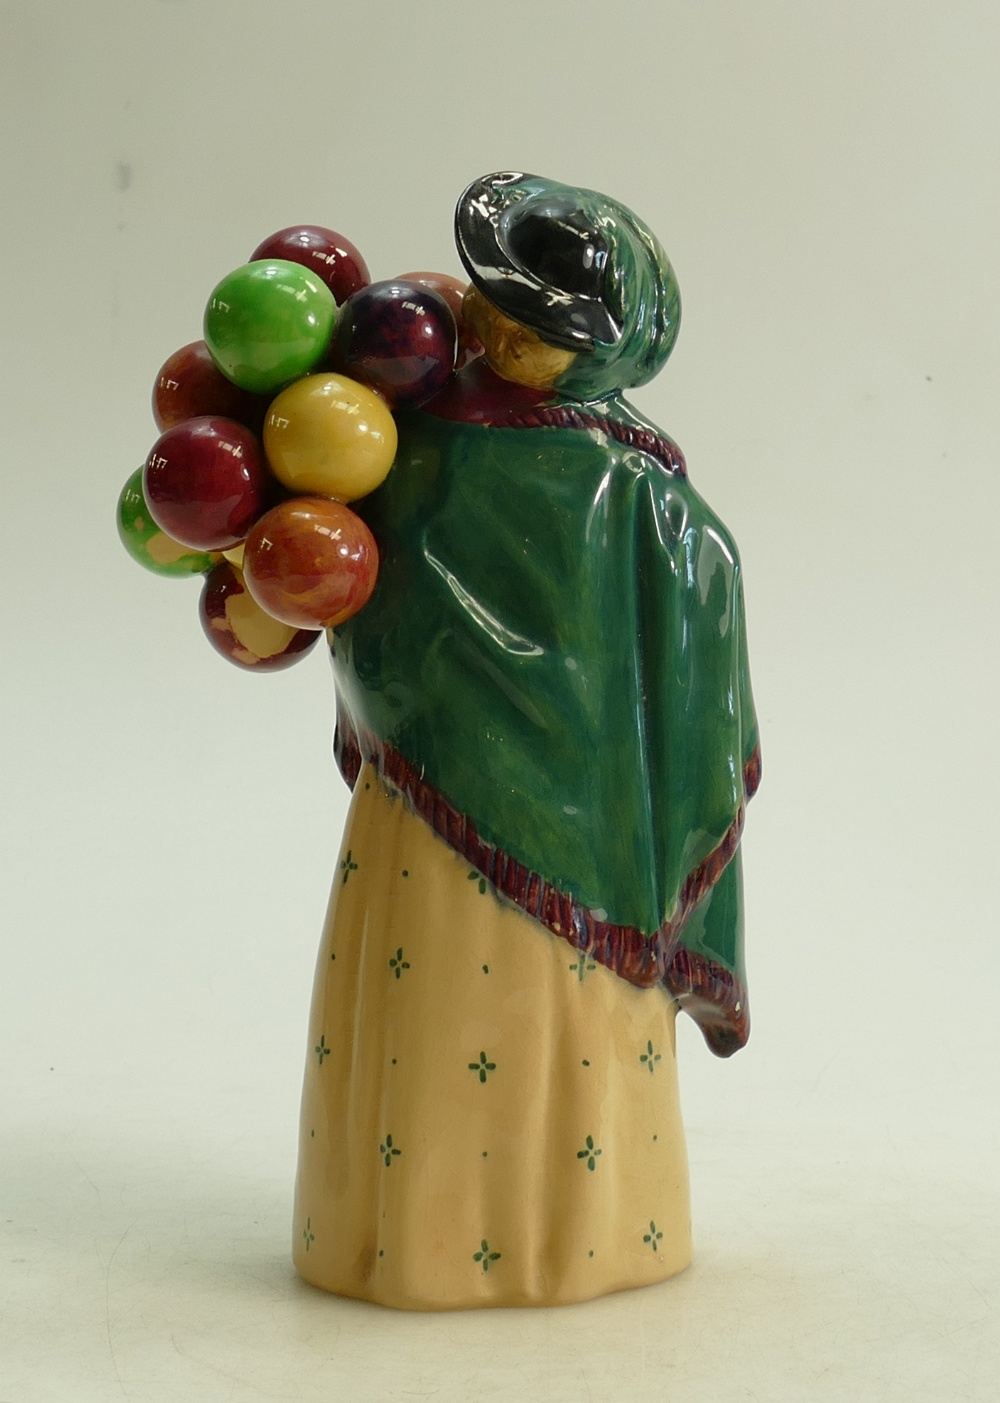 Lot 44 - Royal Doulton figure The Balloon Seller HN583: Factory paint issue to back of balloons